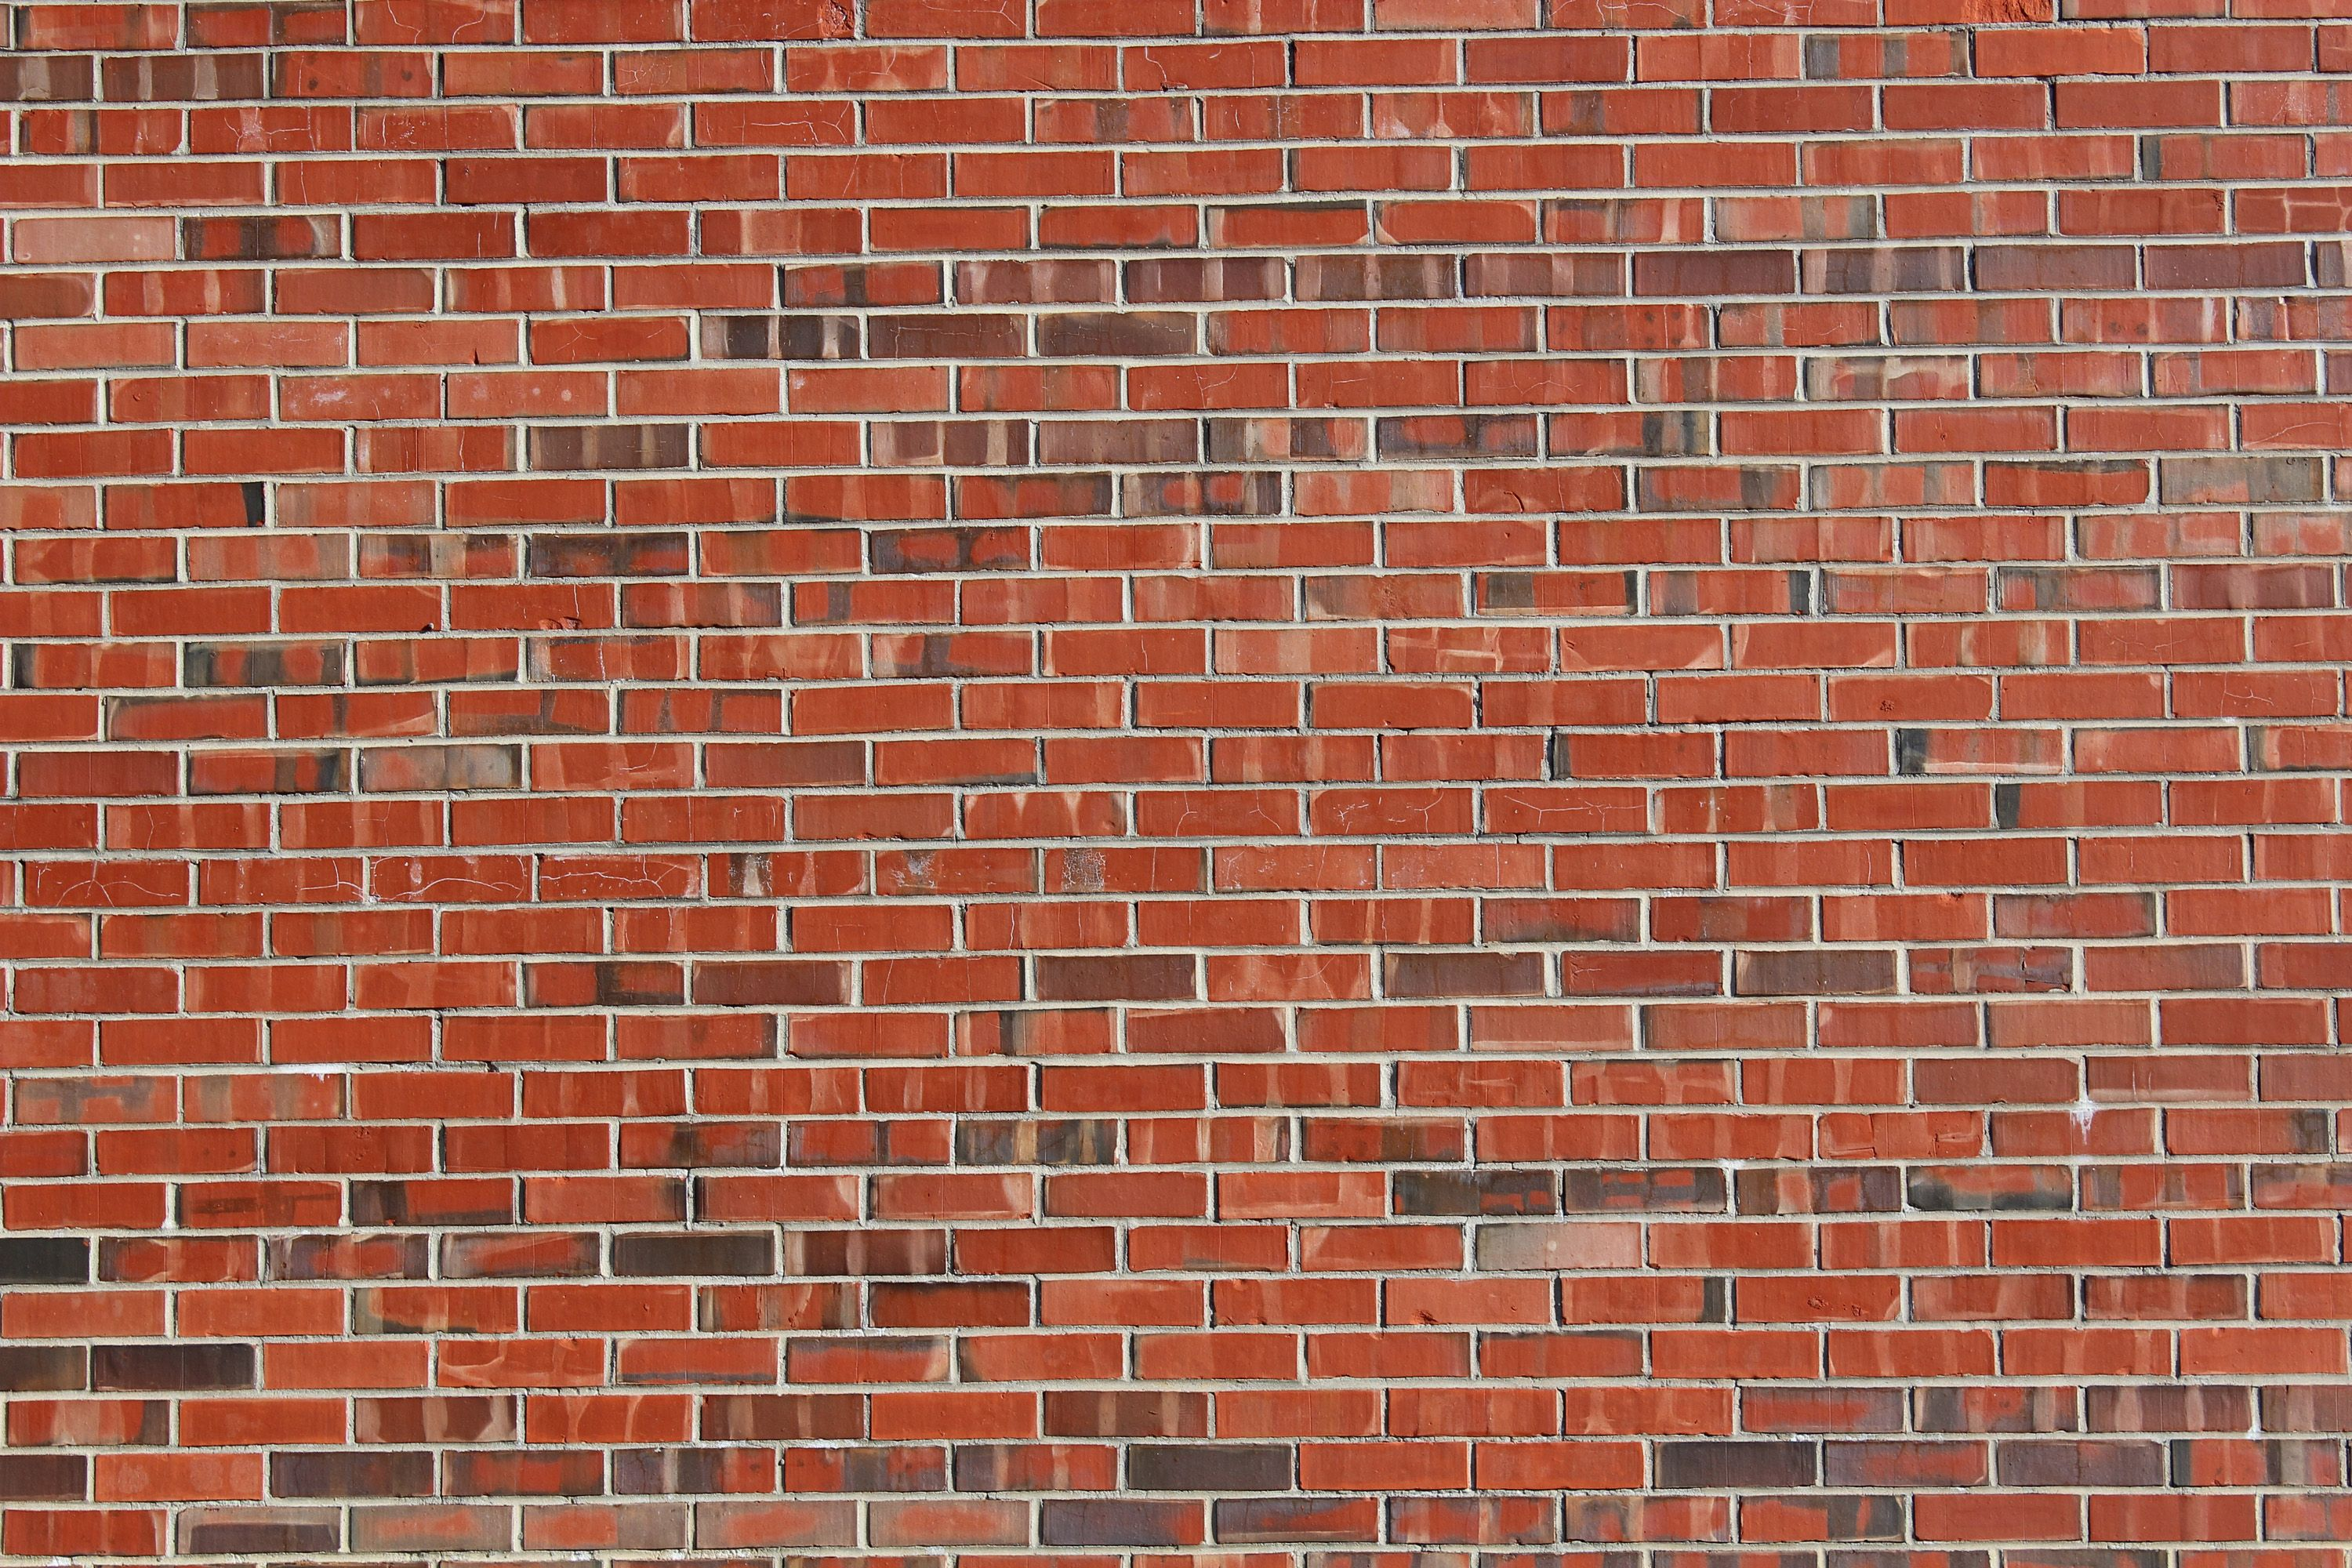 Red Brick Wall Tile Google Search